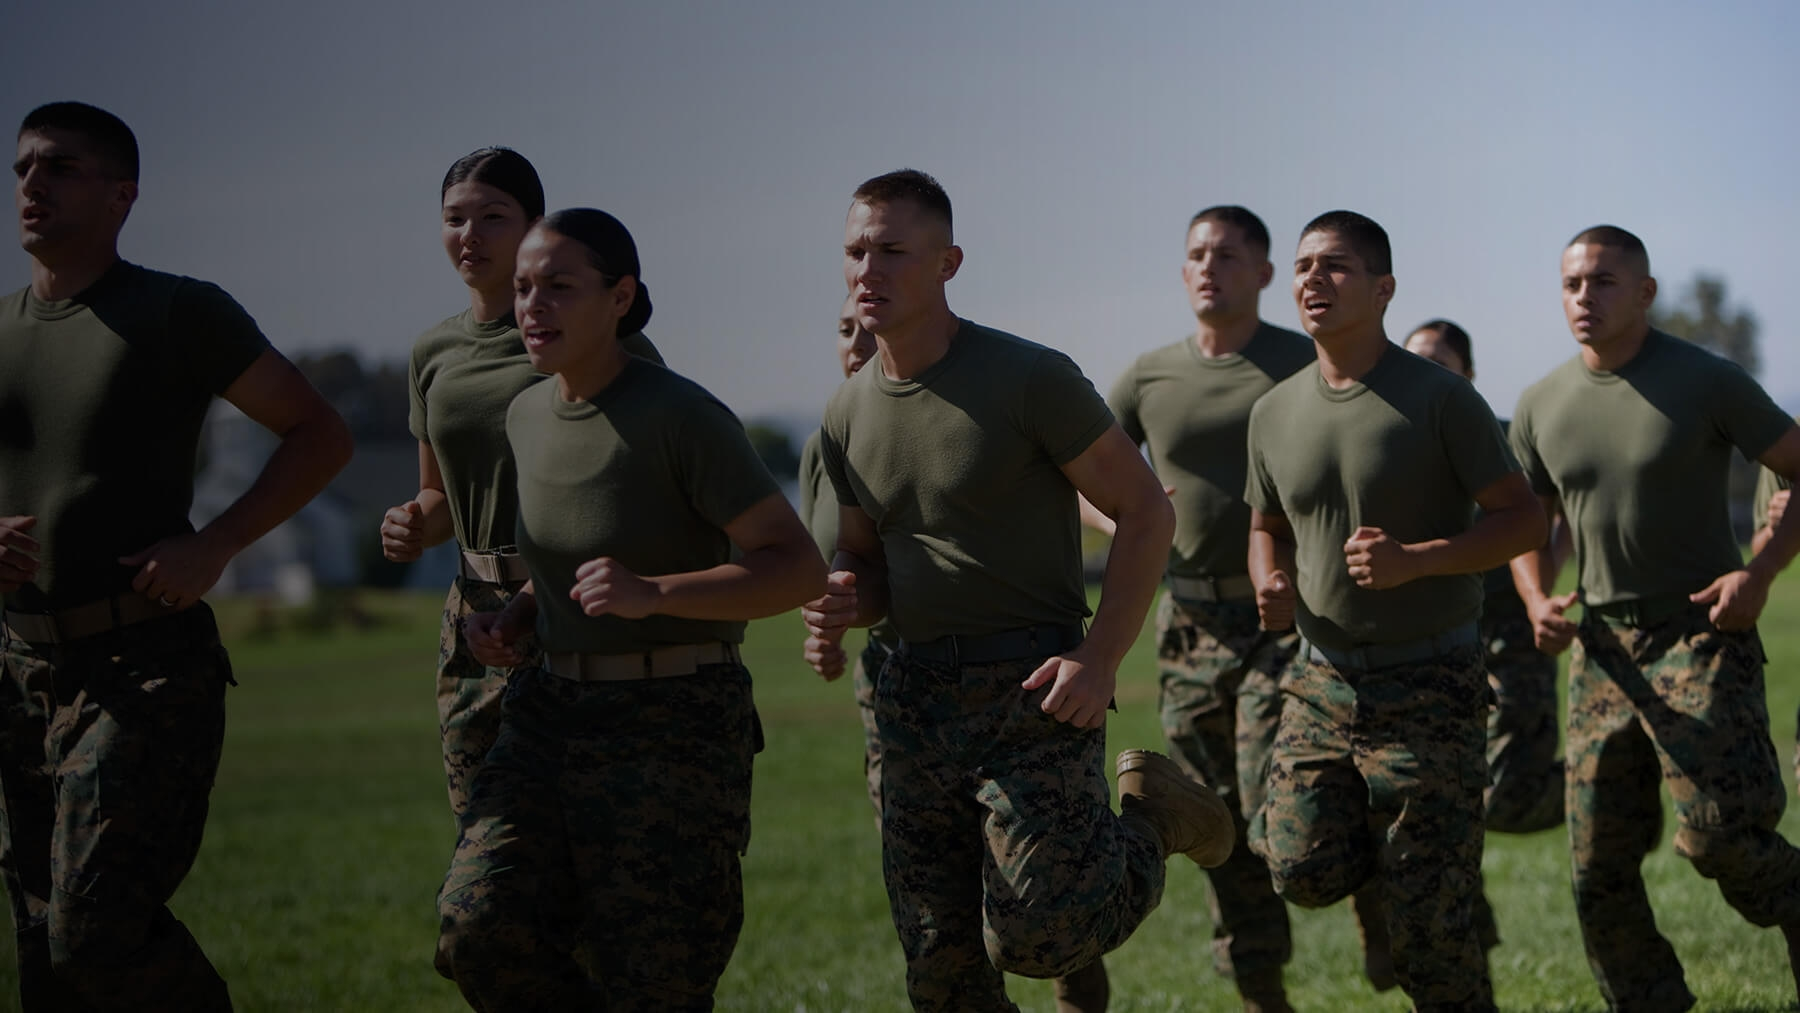 Marines, both male and female, run together.